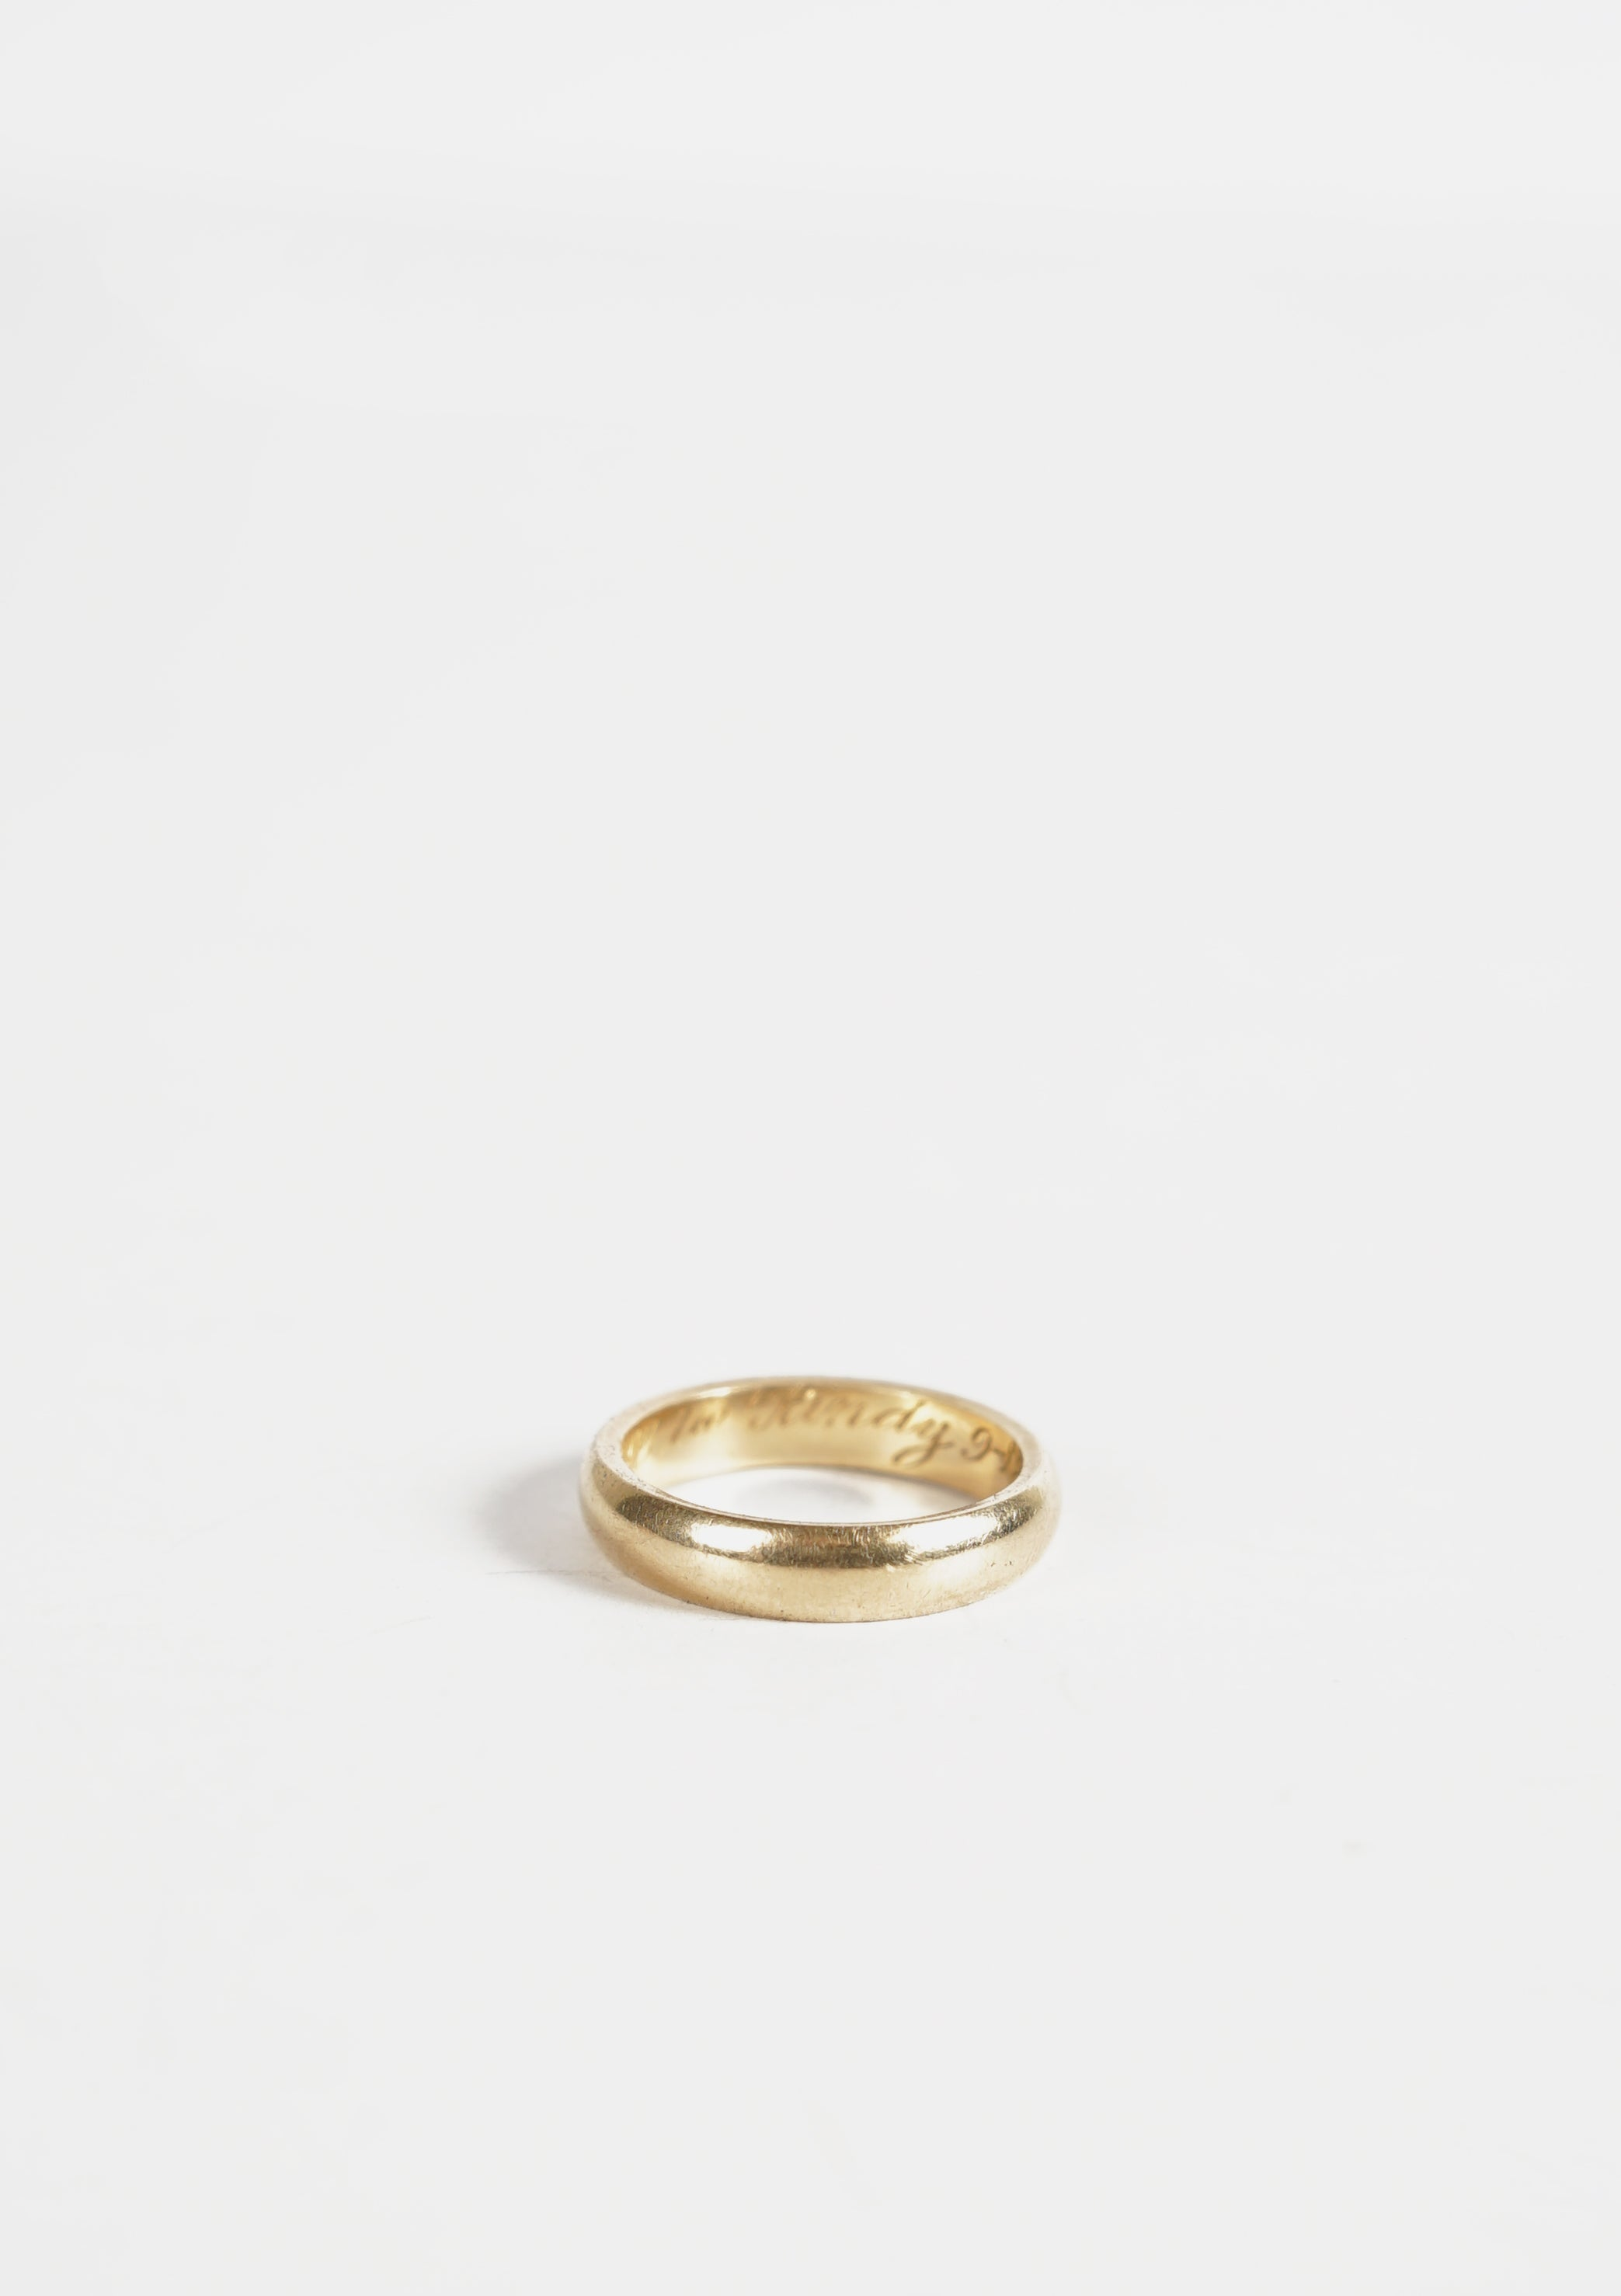 14k Gold Classic Ring / 4mm